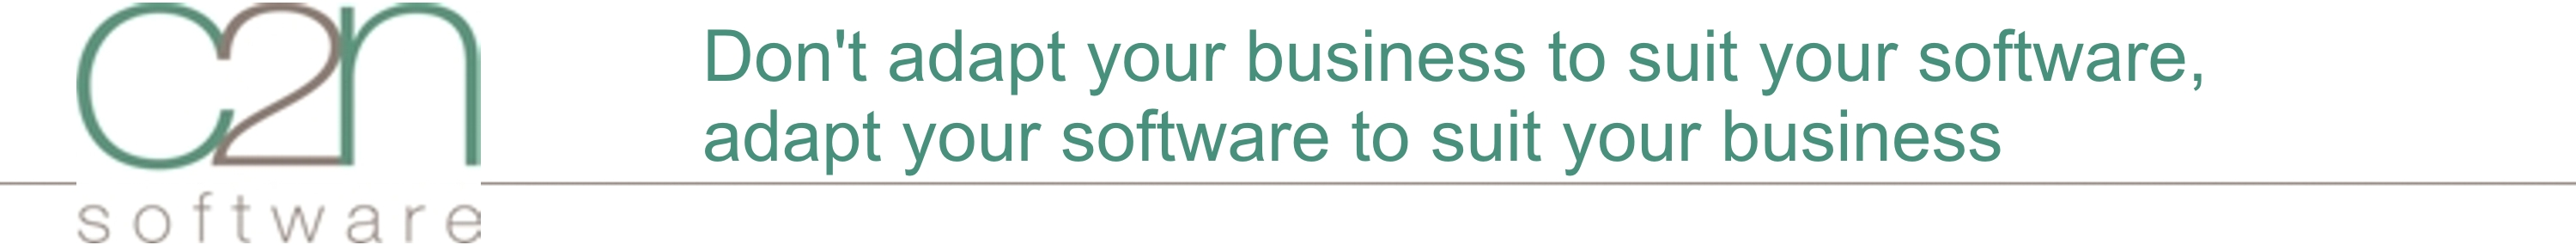 Dont adapt your business to suit your software, adapt your software to suit your business